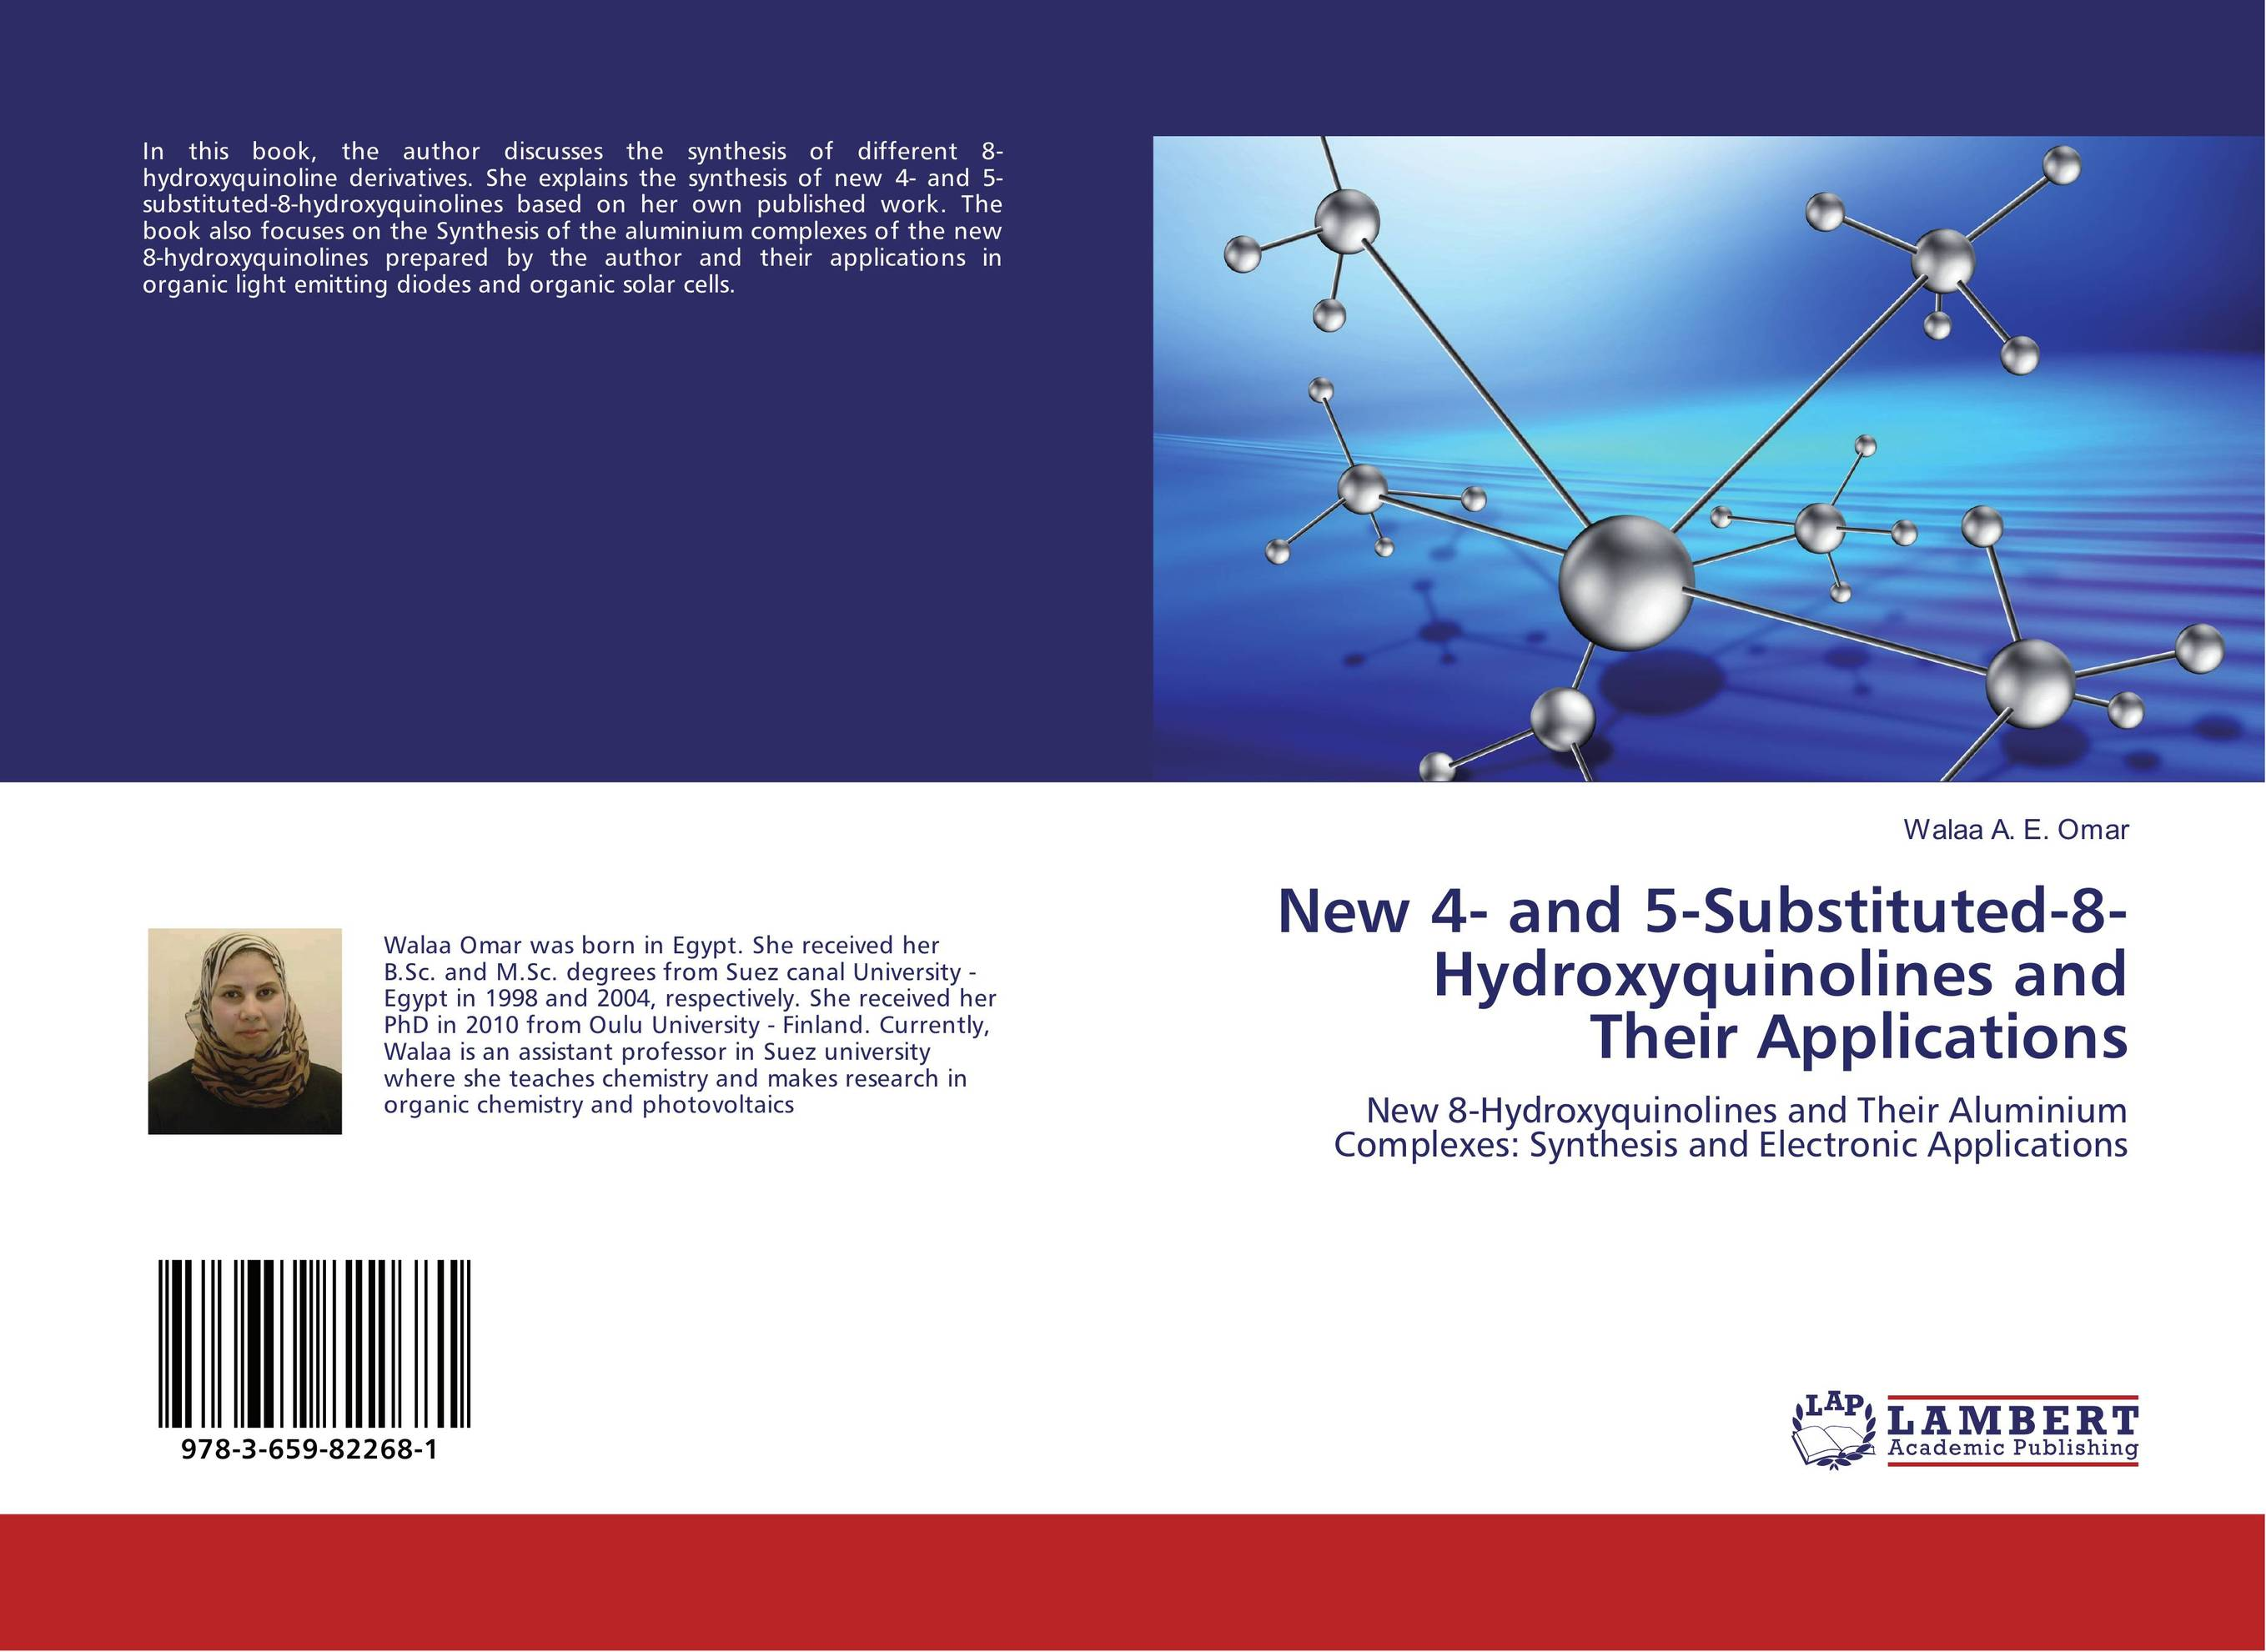 New 4- and 5-Substituted-8-Hydroxyquinolines and Their Applications dennis hall g boronic acids preparation and applications in organic synthesis medicine and materials